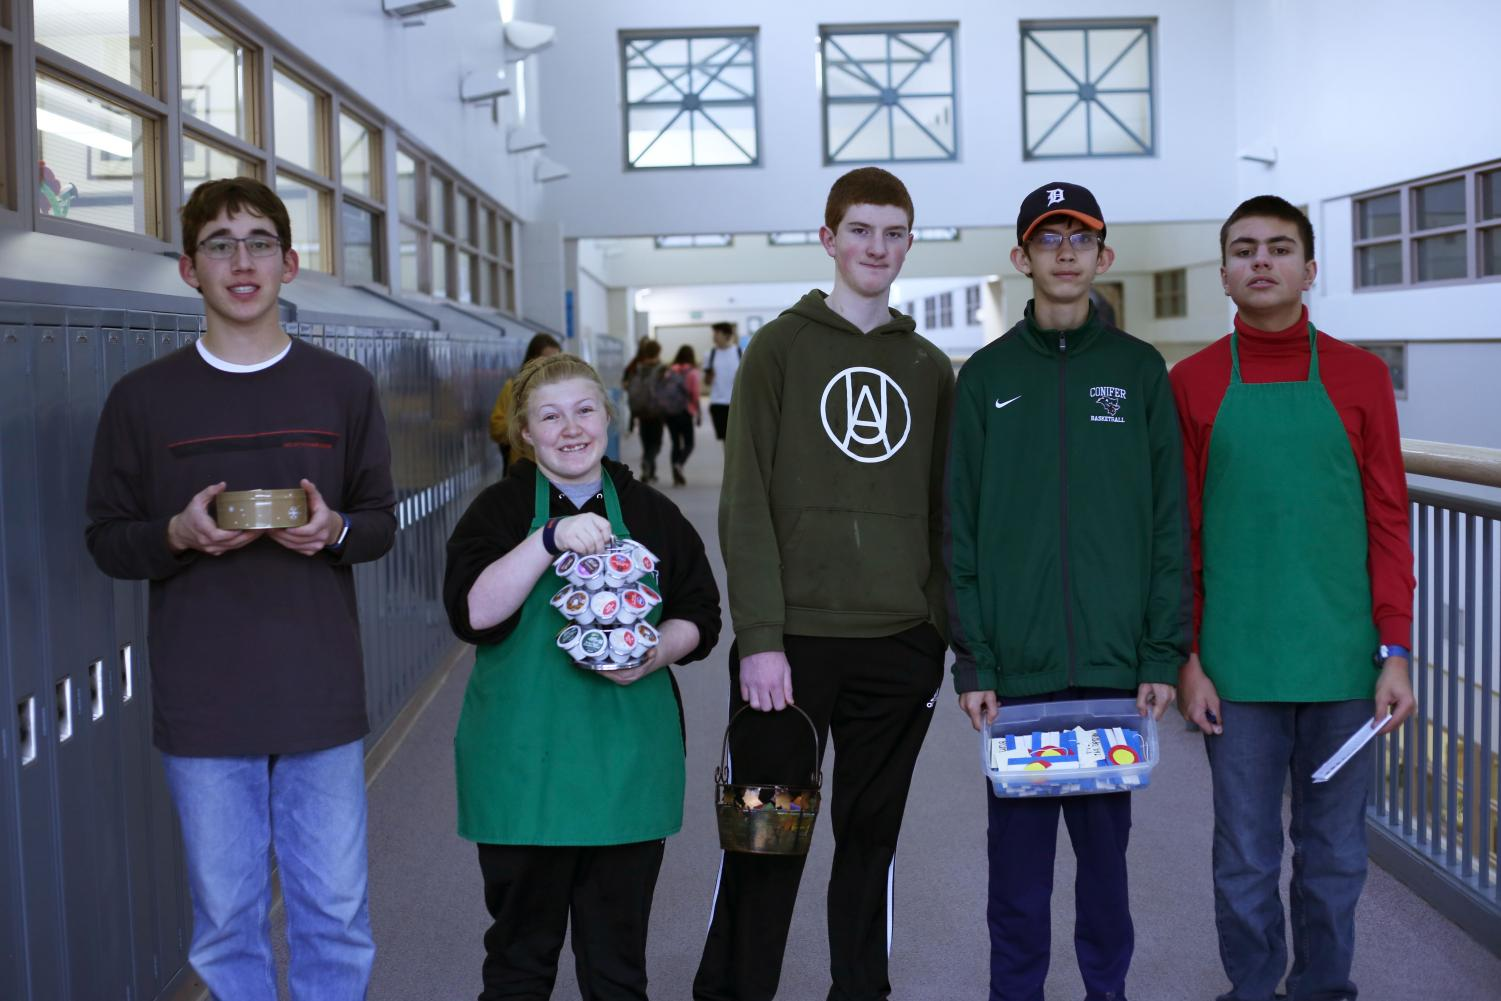 Wyatt Bunch, Maddi Koskinen, Luke Whittington, Joel VanDyne, and Mack Teaff stop for a quick photo between teachers' rooms as they collect coffee orders.  Their